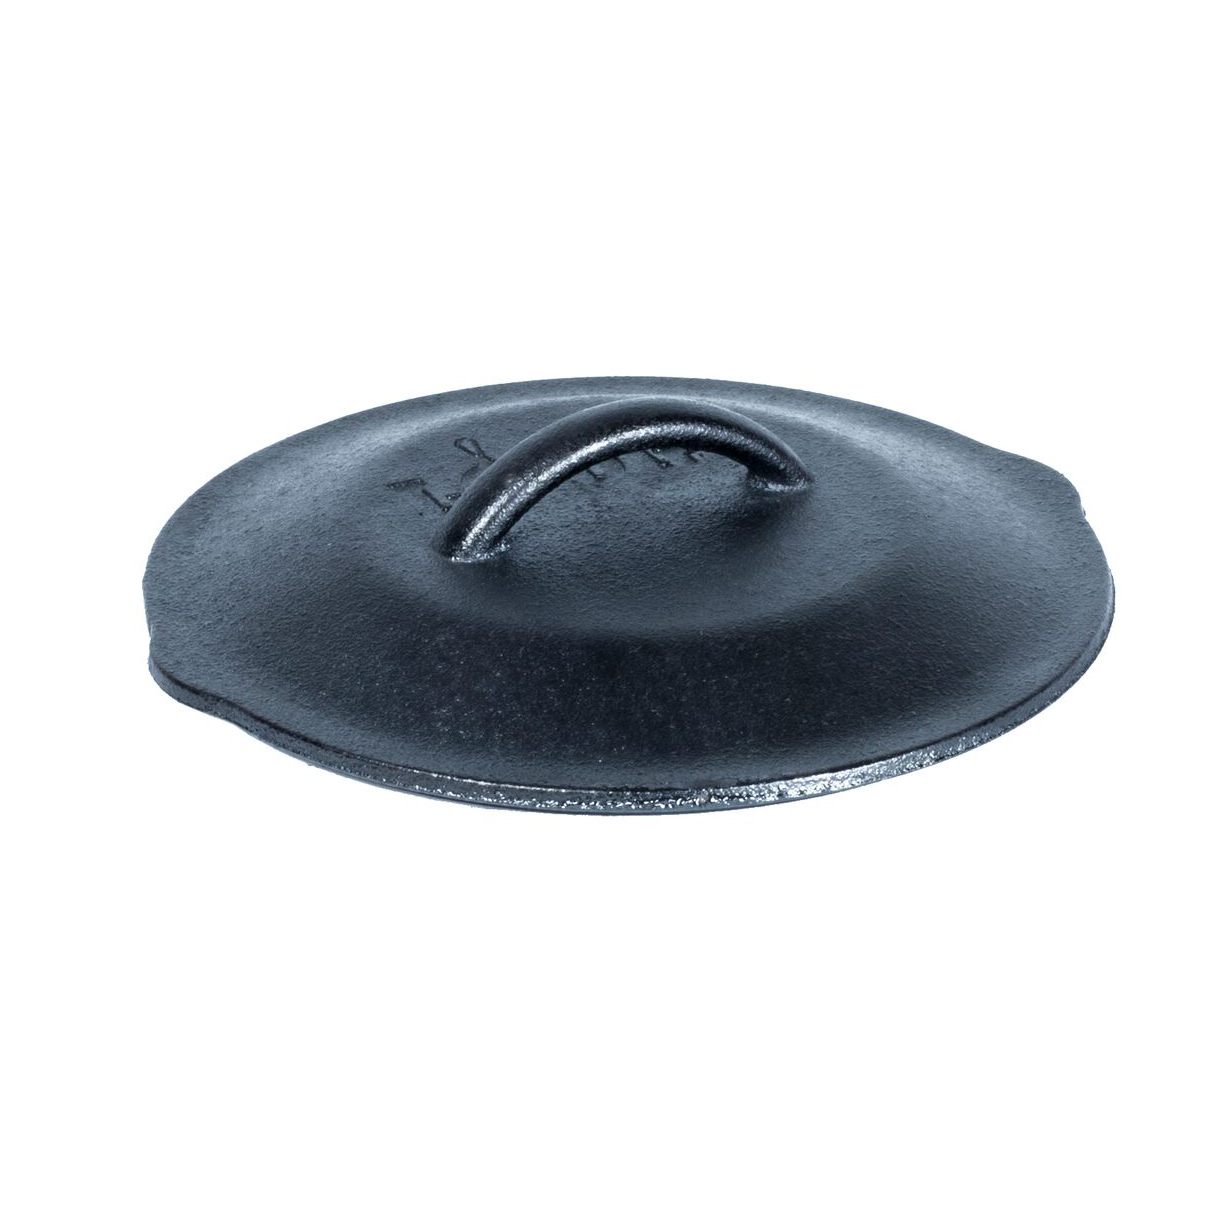 Lodge Manufacturing L3SC3 cover / lid, cookware